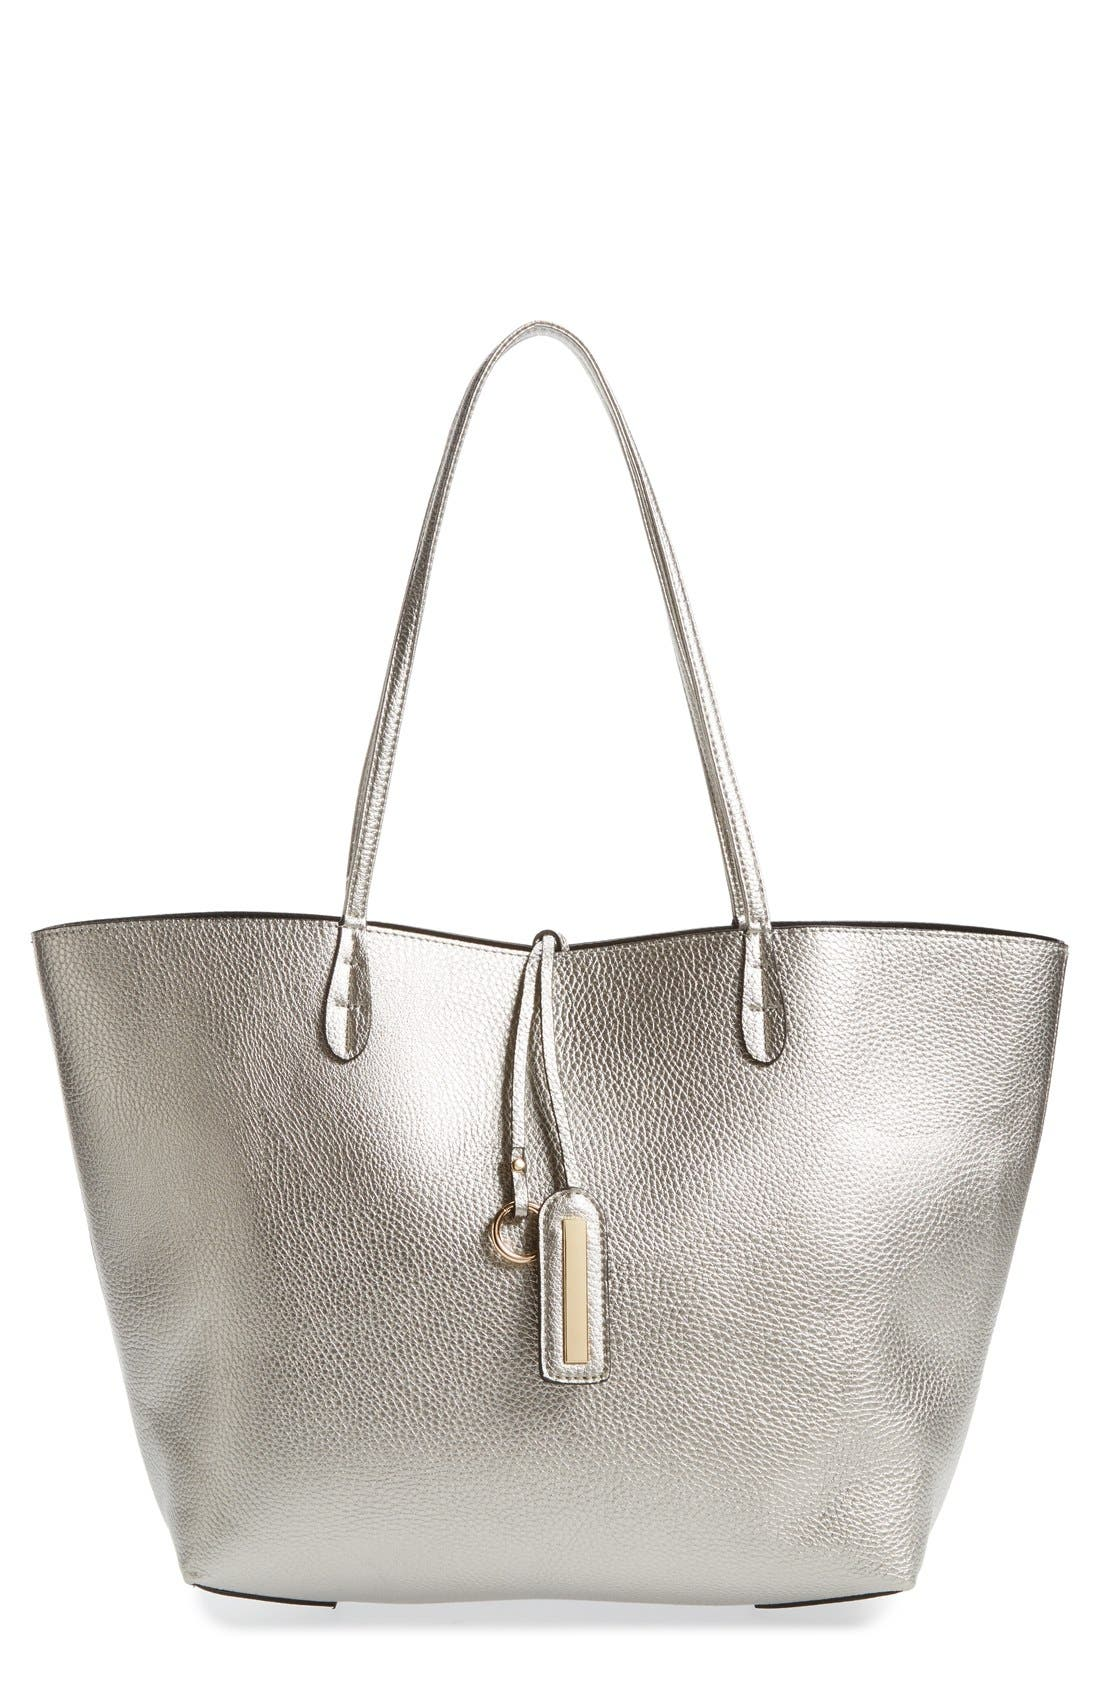 Main Image - Street Level Reversible Faux Leather Tote